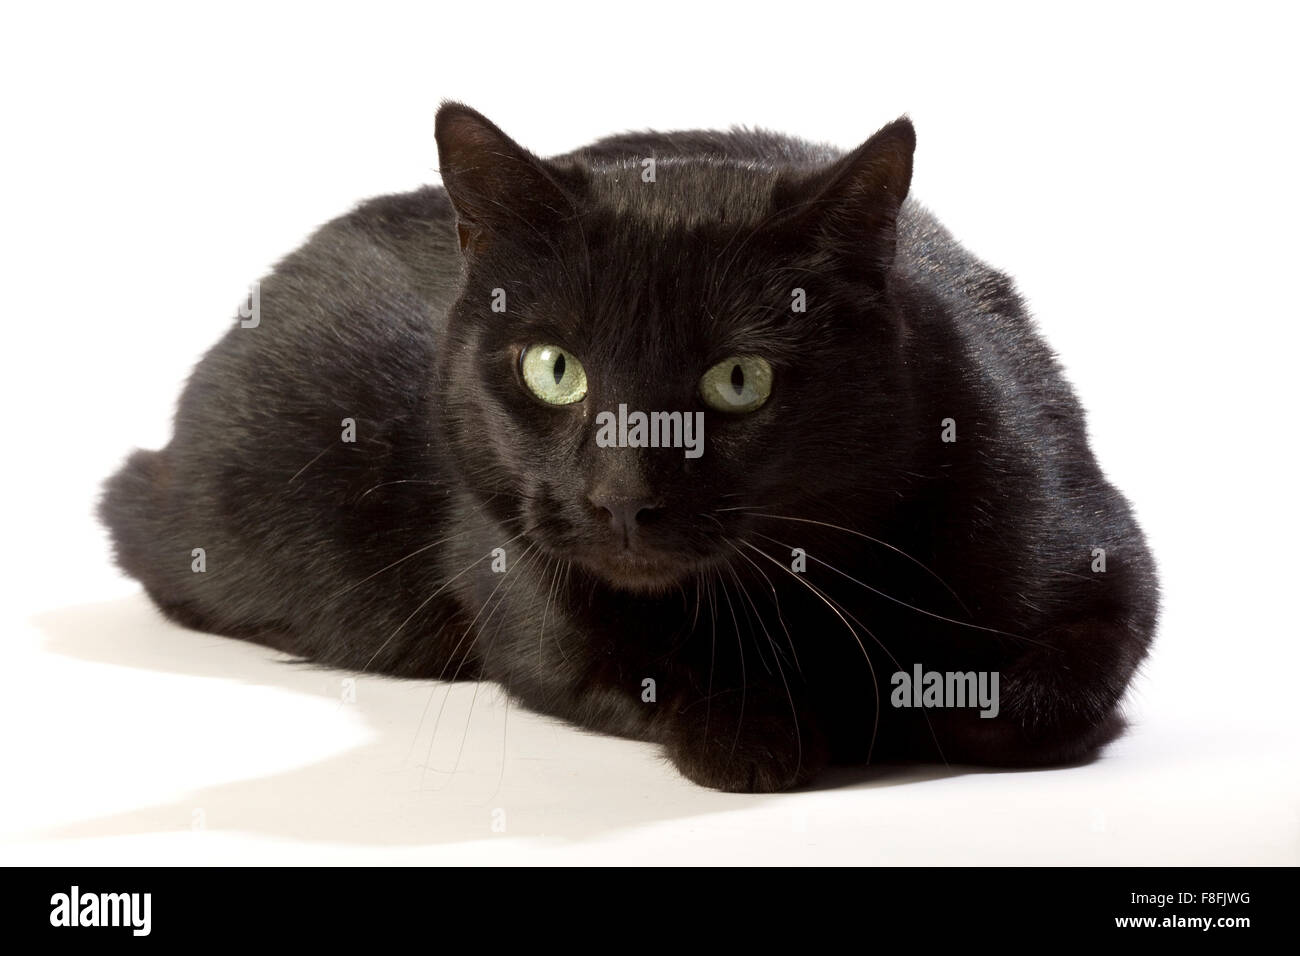 Black cat in different positions. - Stock Image